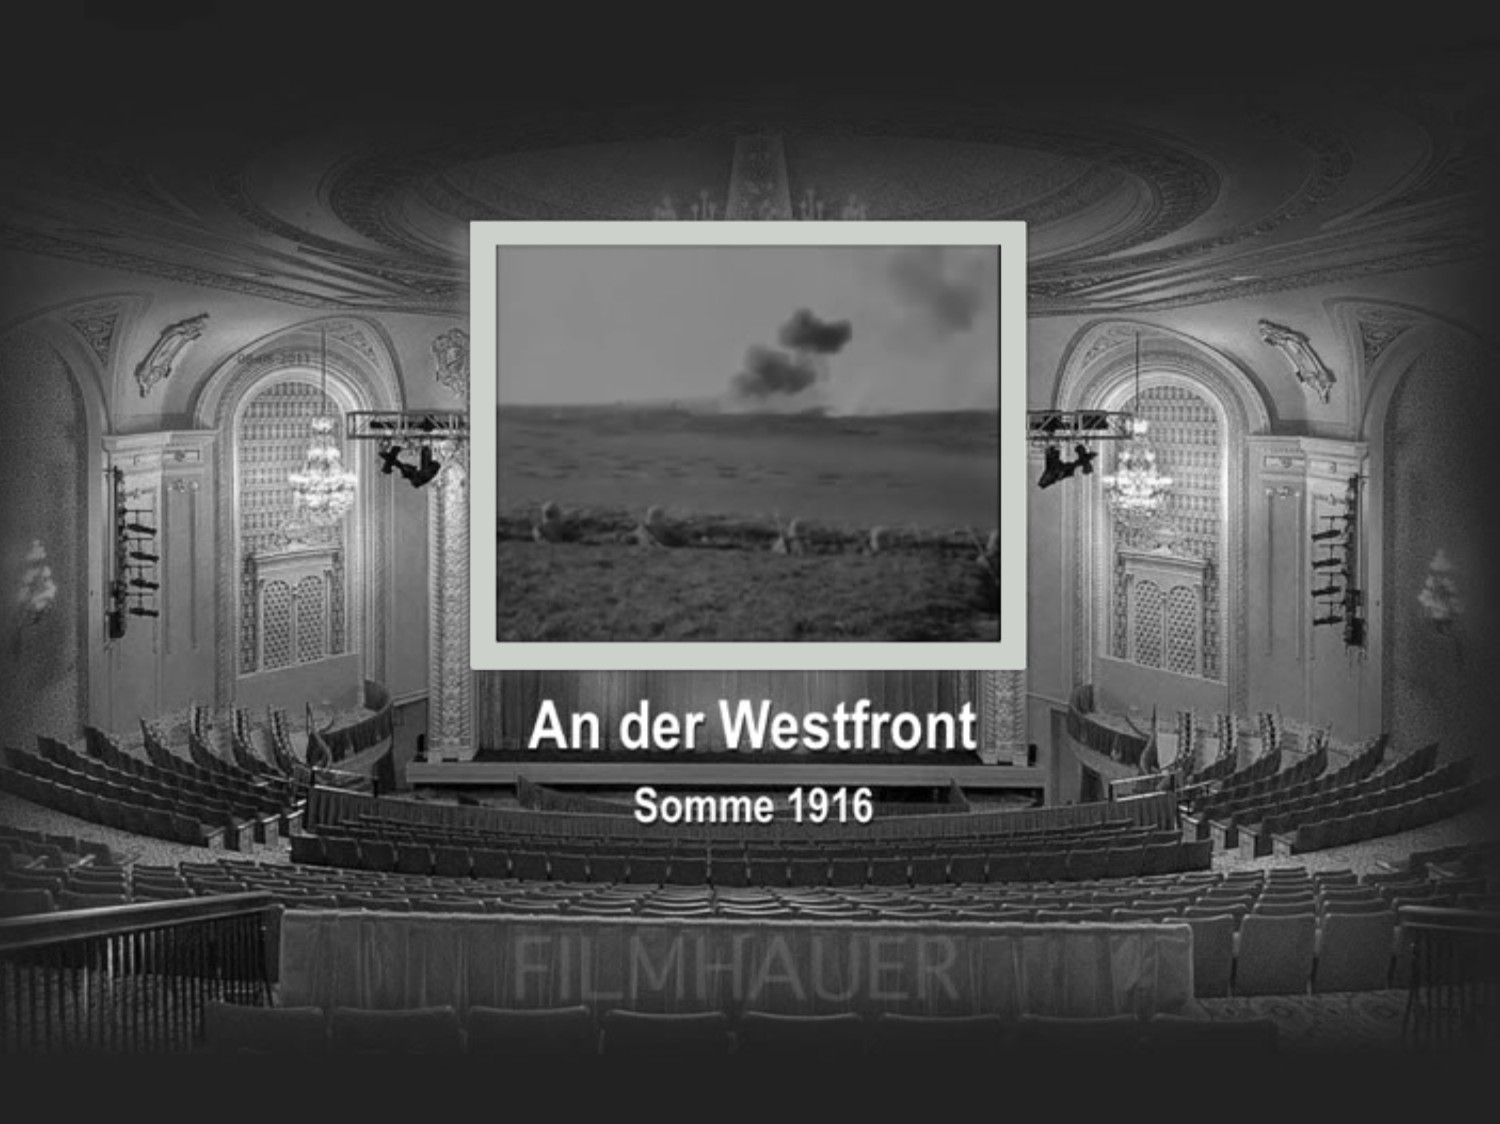 AN DER WESTFRONT SOMME 1916